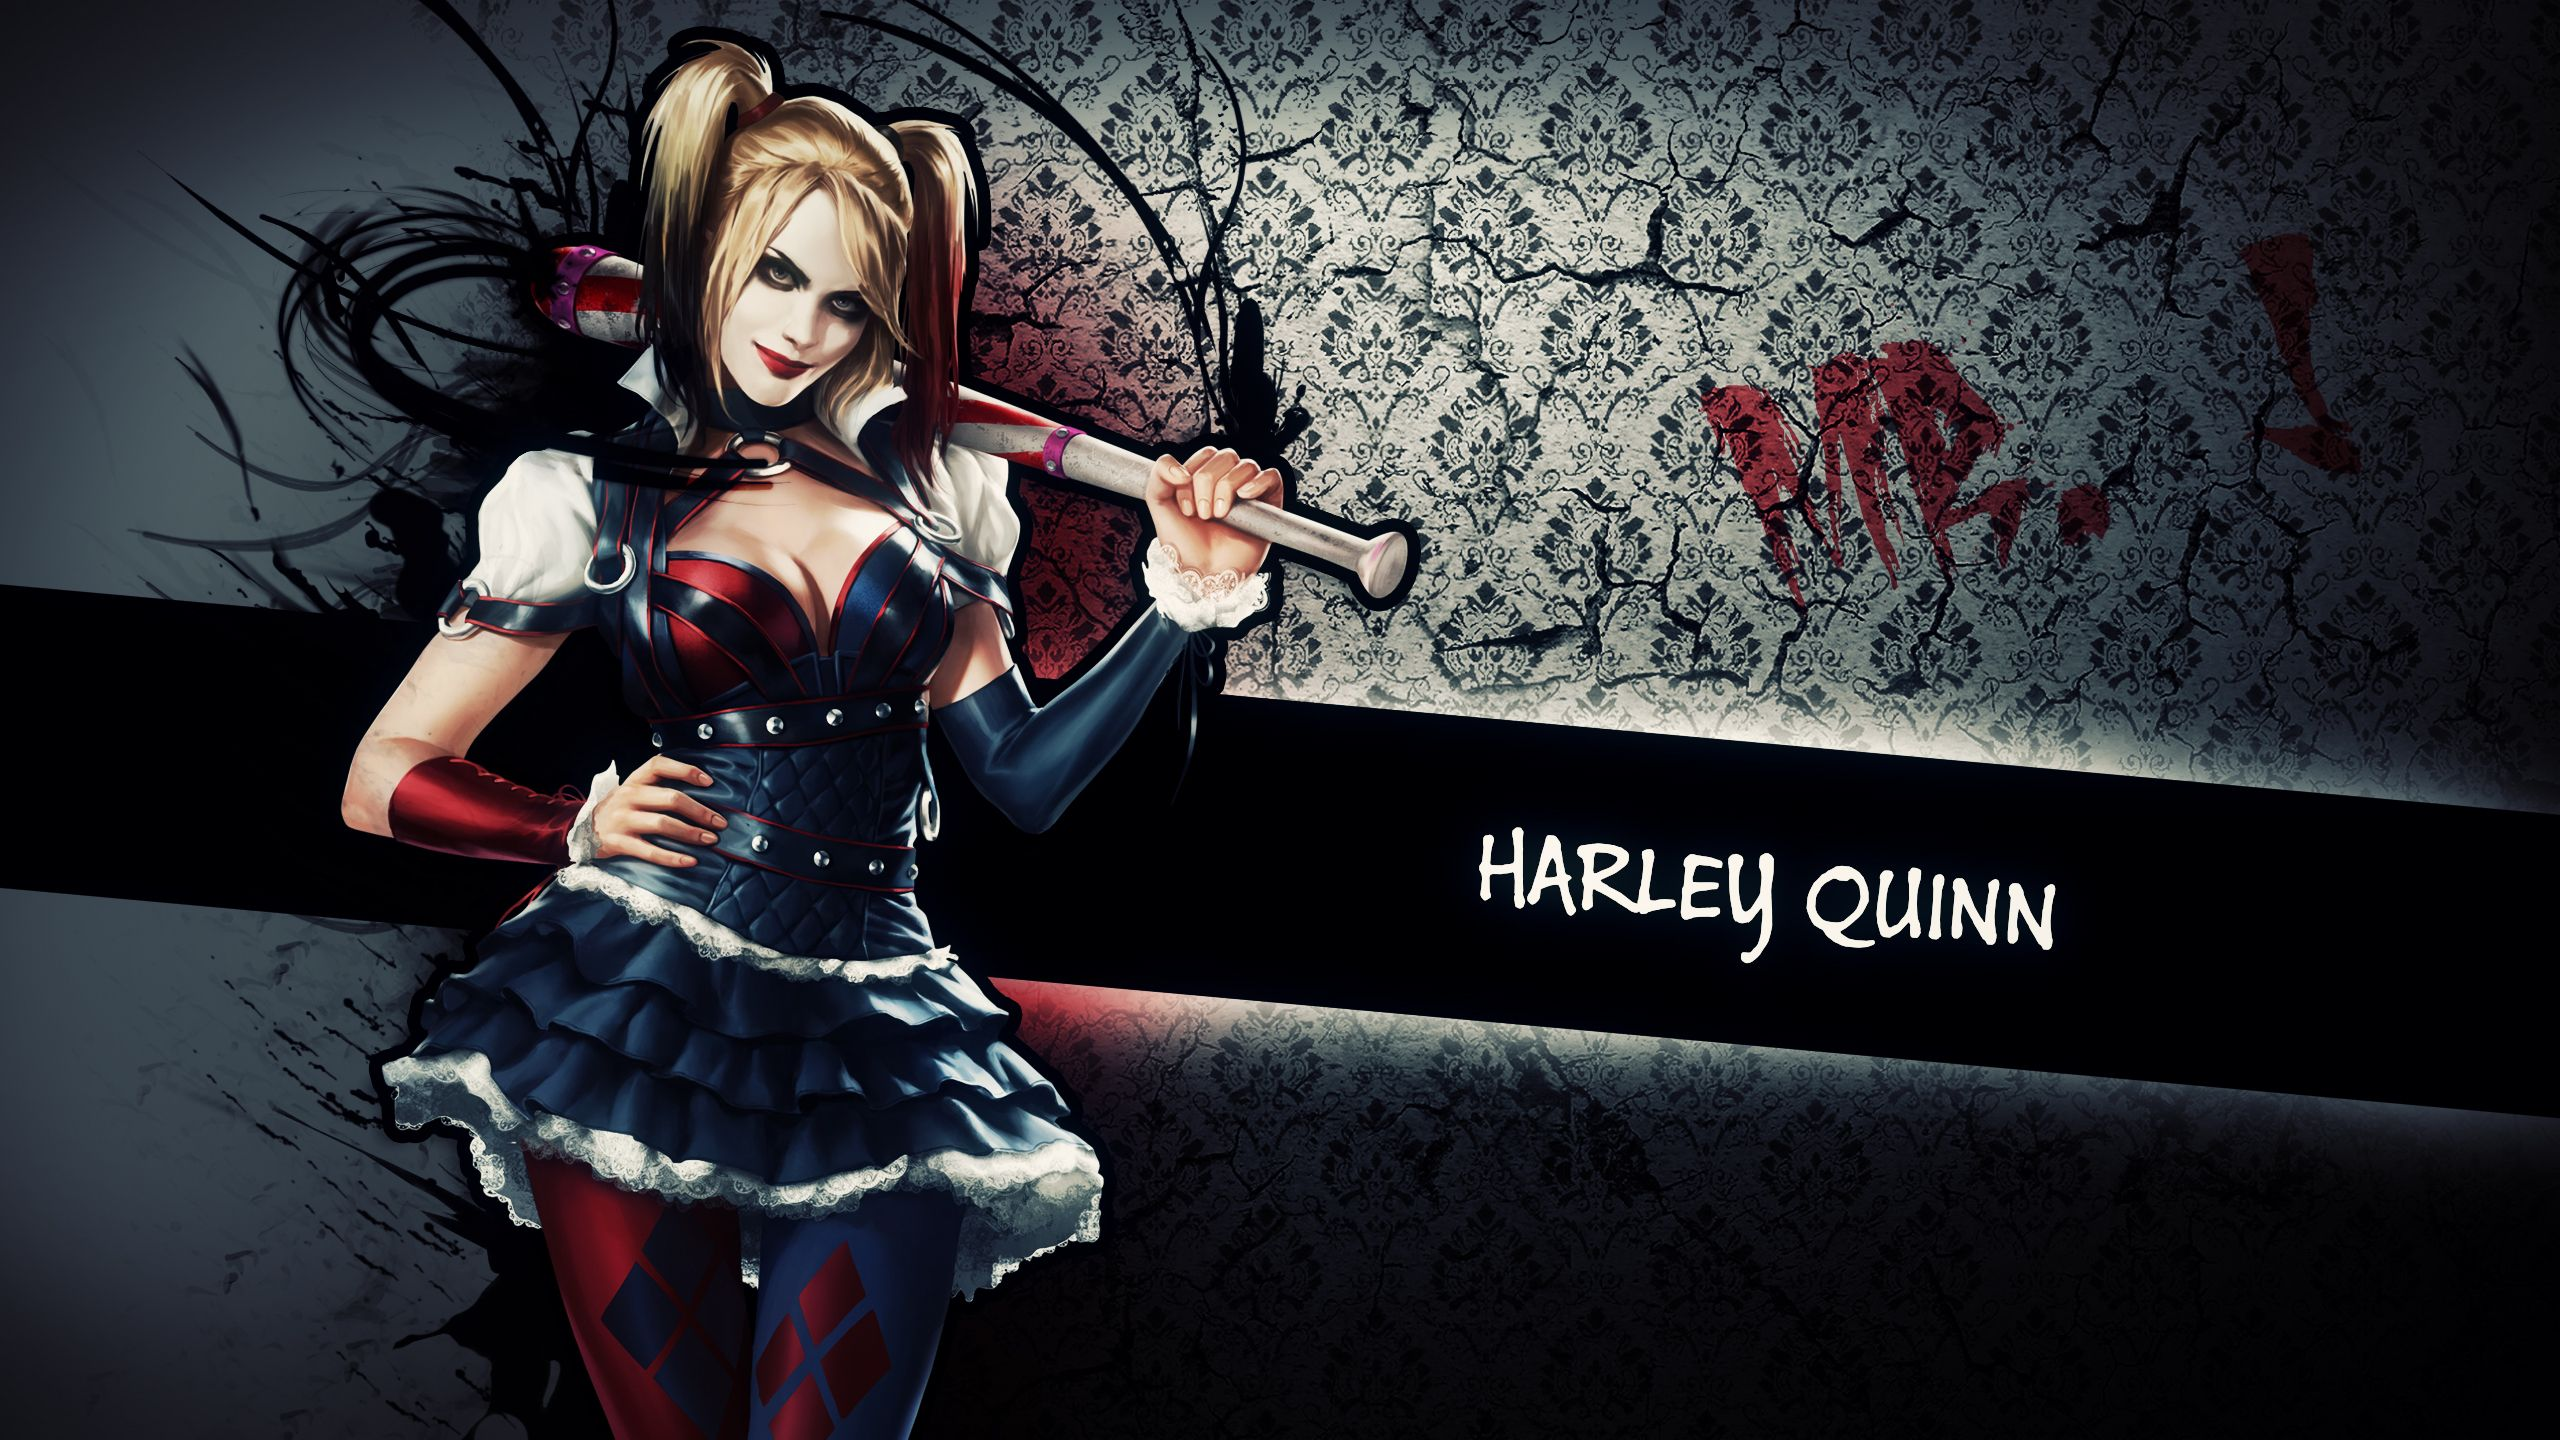 Cool Harley Quinn Wallpapers - Top Free